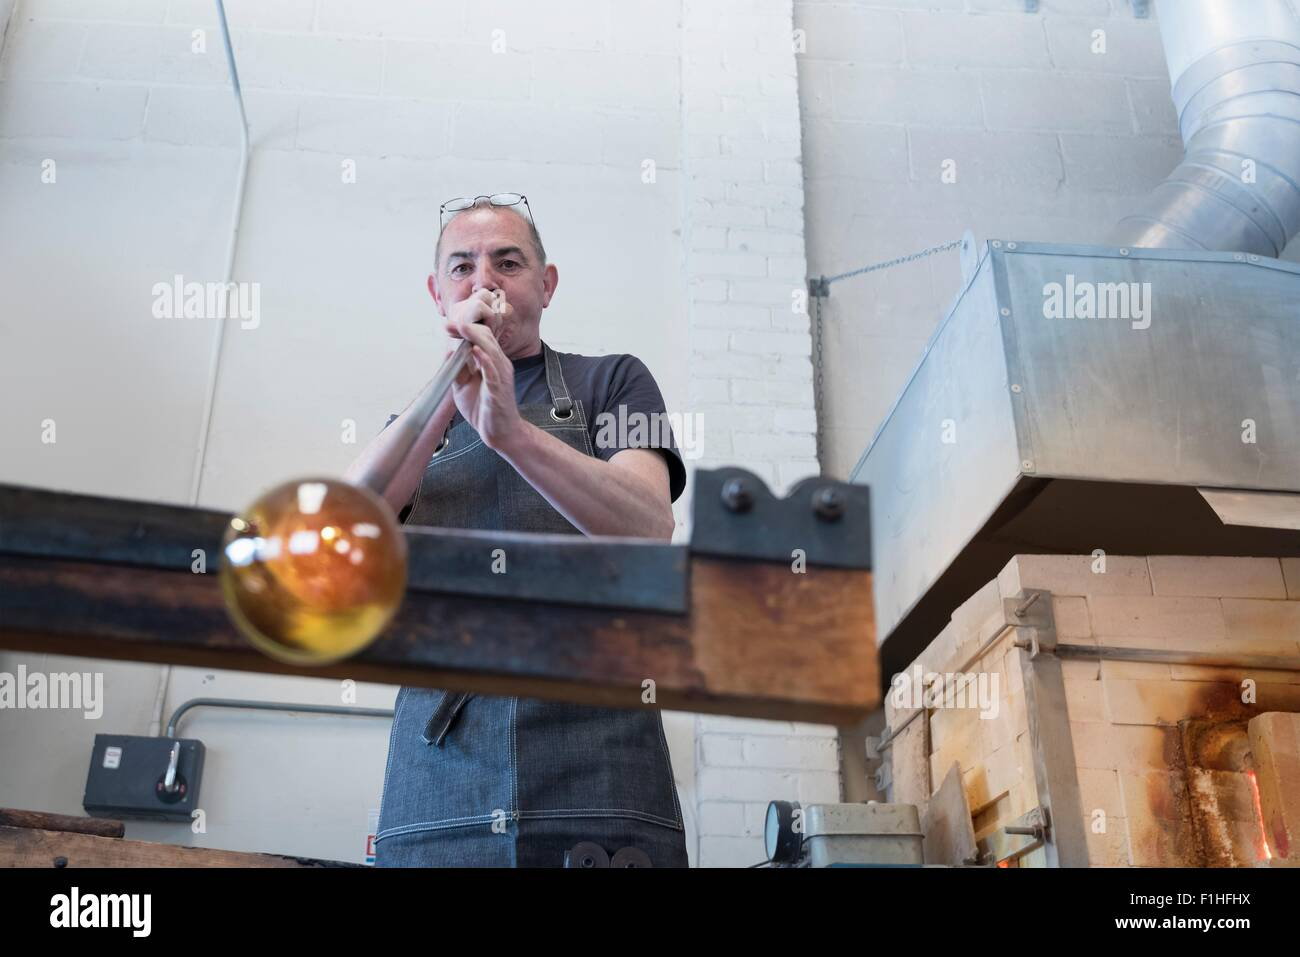 Glassblower blowing hot glass - Stock Image